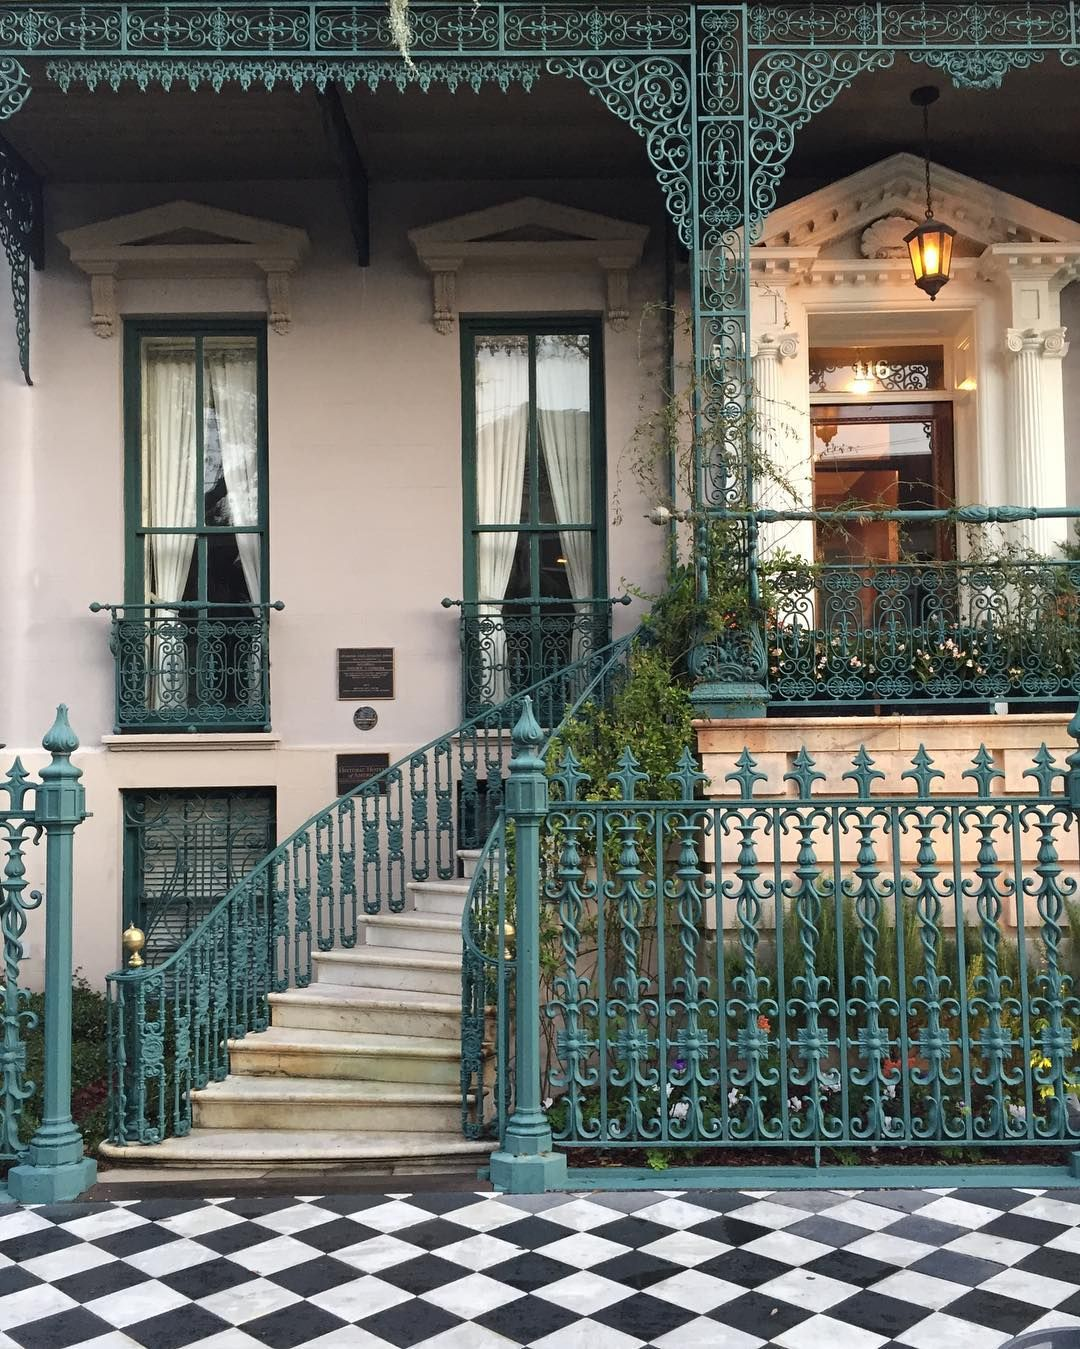 Good Morning Charleston Architecture Broadstreet Perfect Color For Wrought Iron Railings Iron Garden Gates Iron Railings Outdoor Wrought Iron Garden Gates